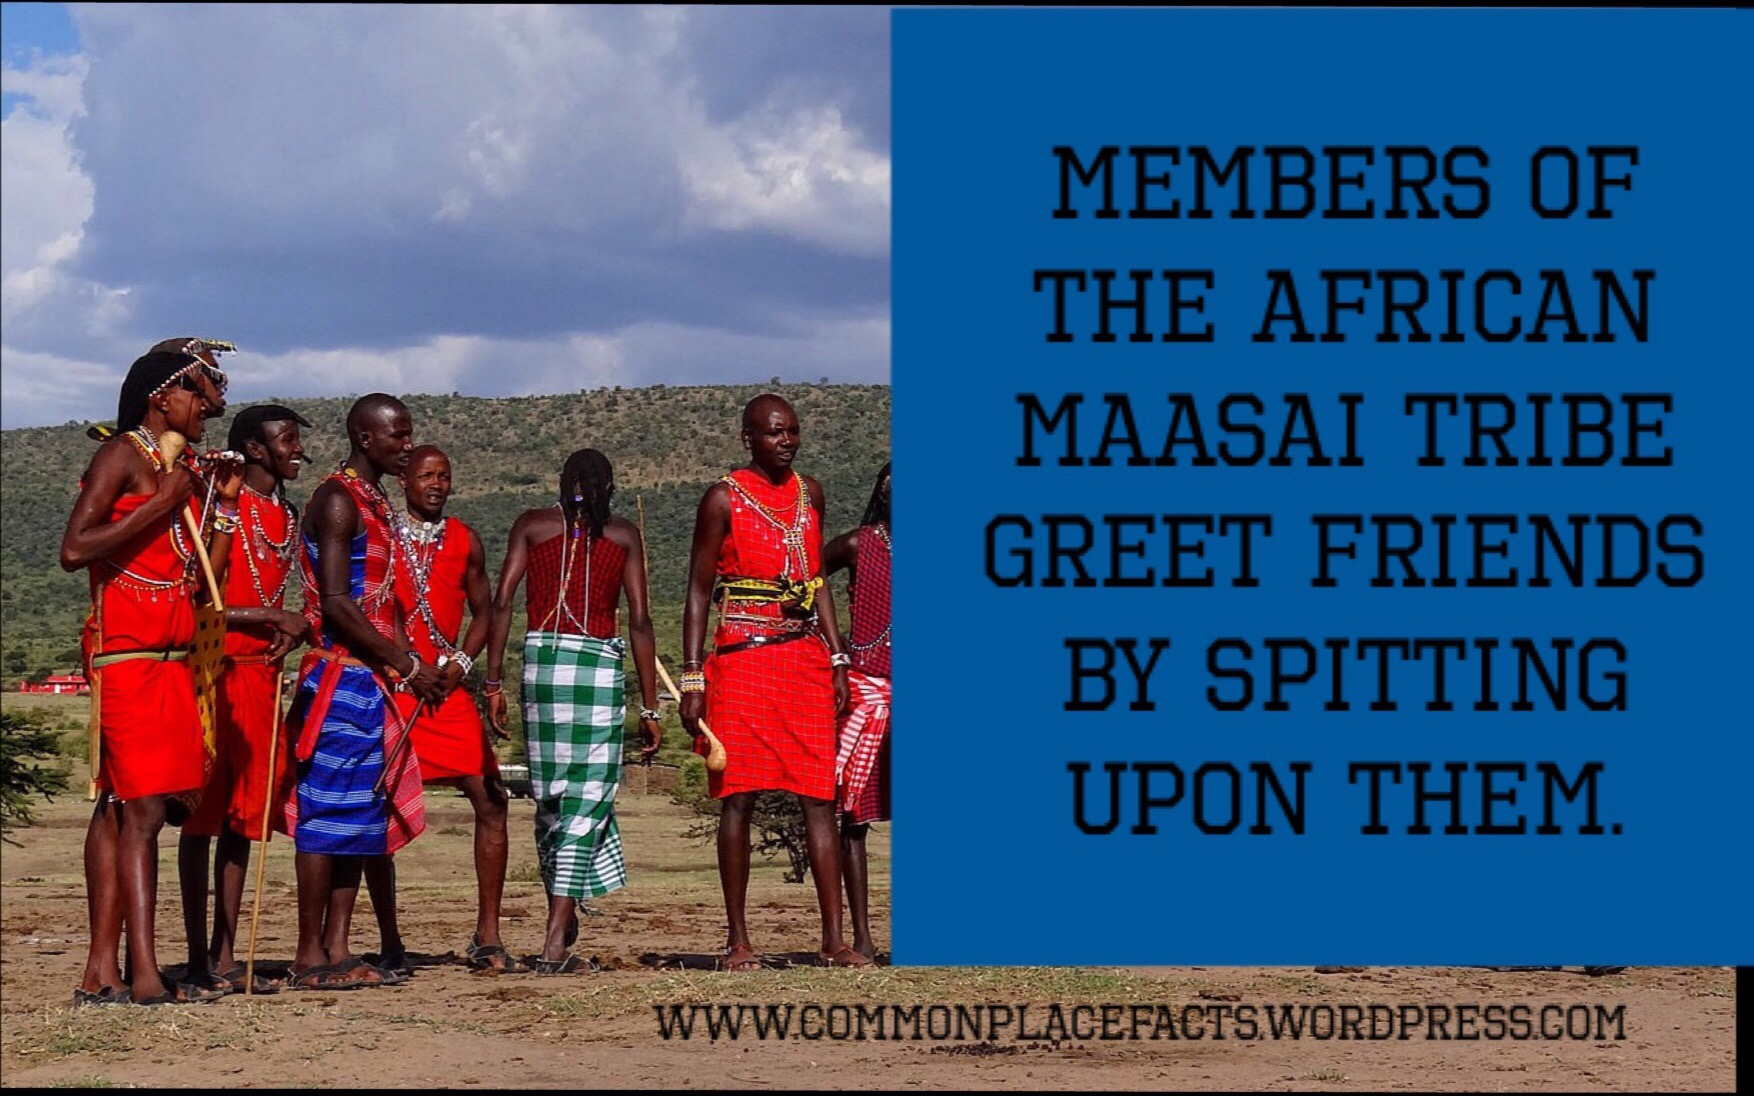 Maasai Tribe of Africa Greet Friends by spitting on them.